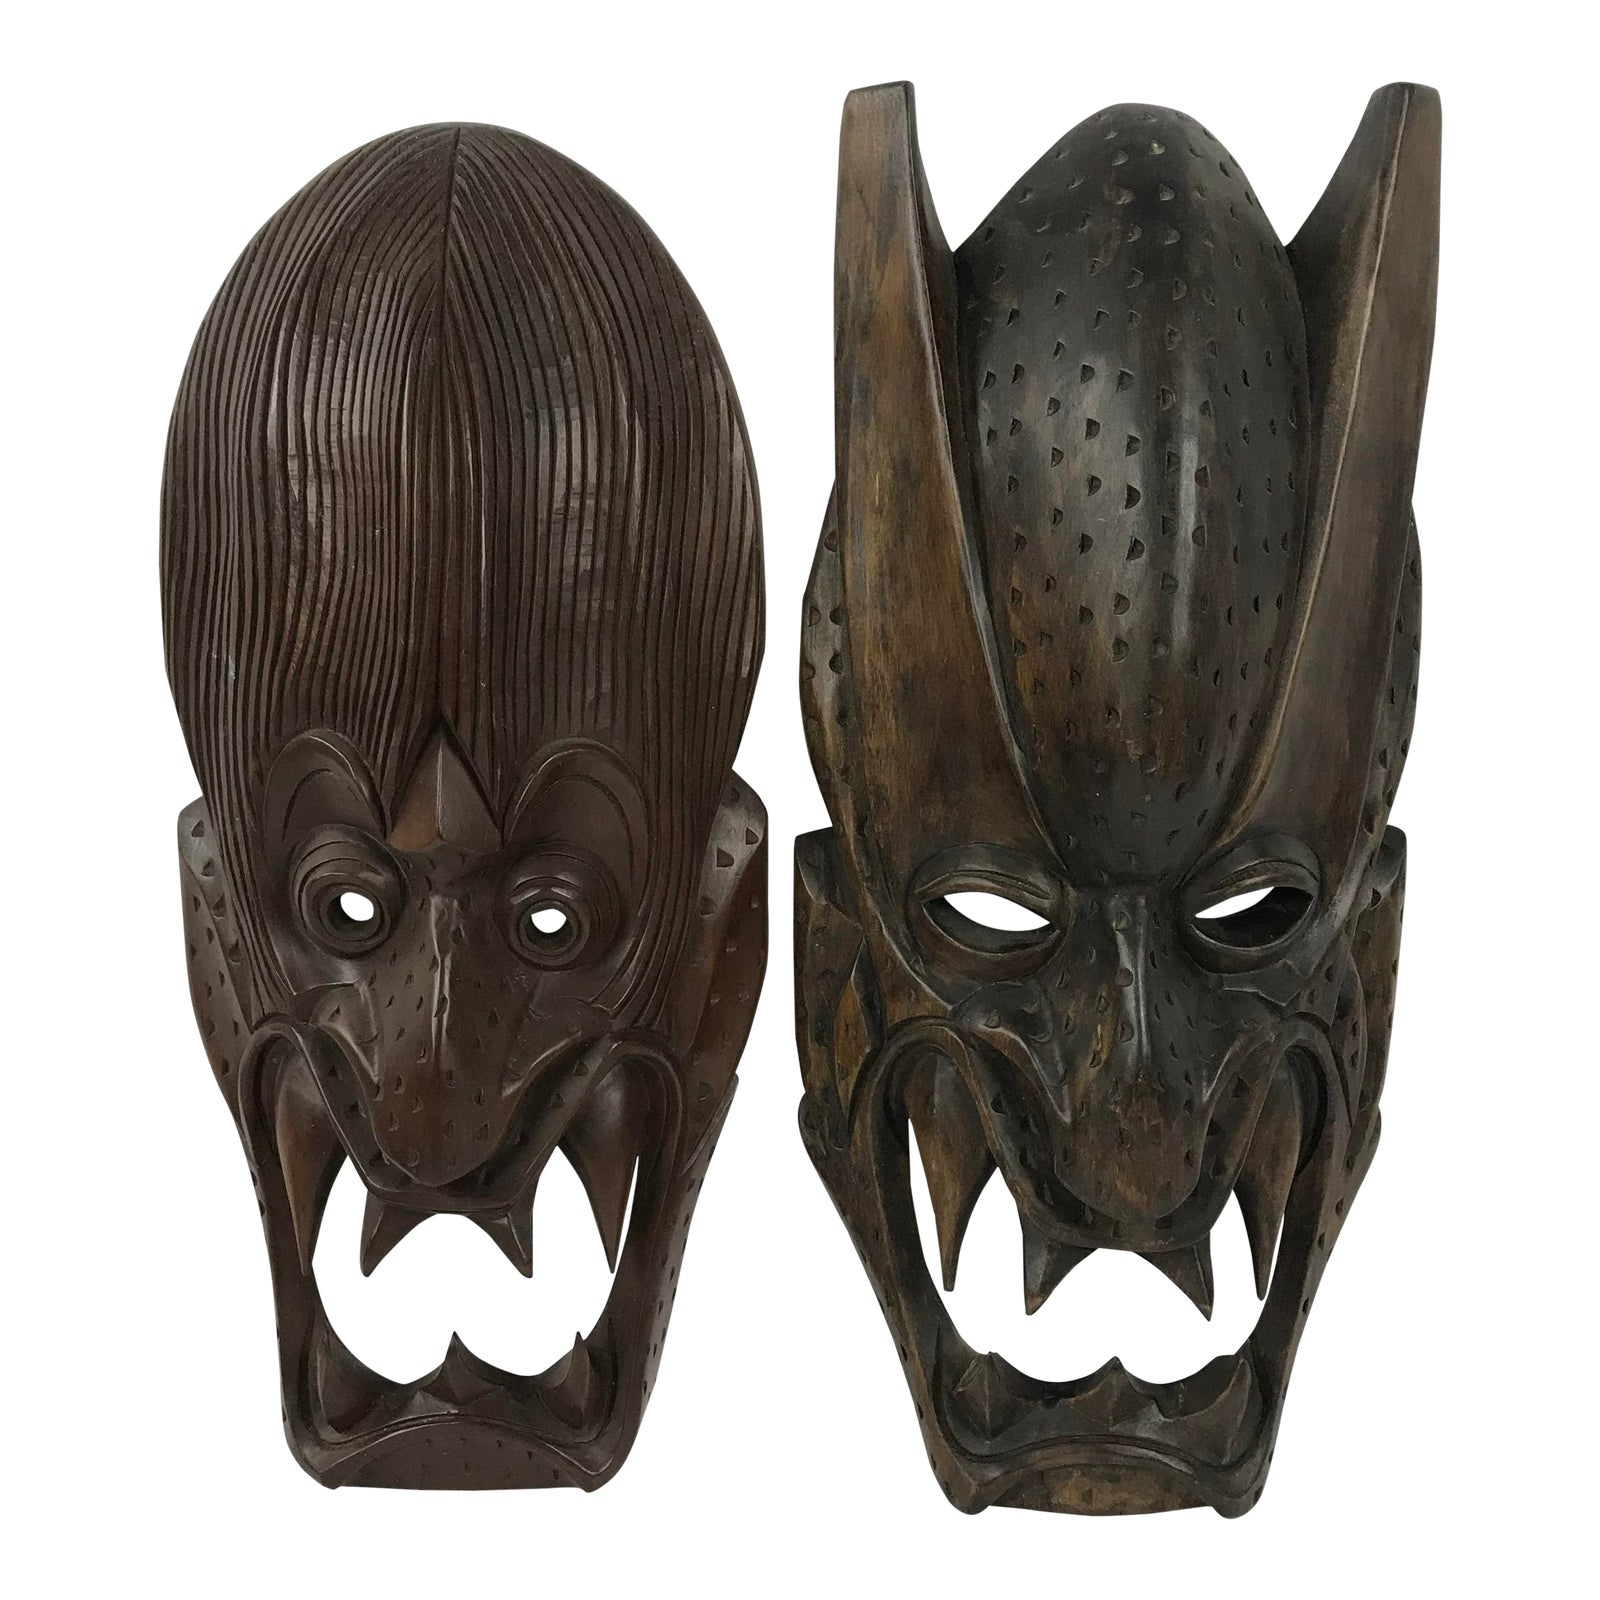 20th Century Tribal Carved Wooden Igorot Or Ifugao